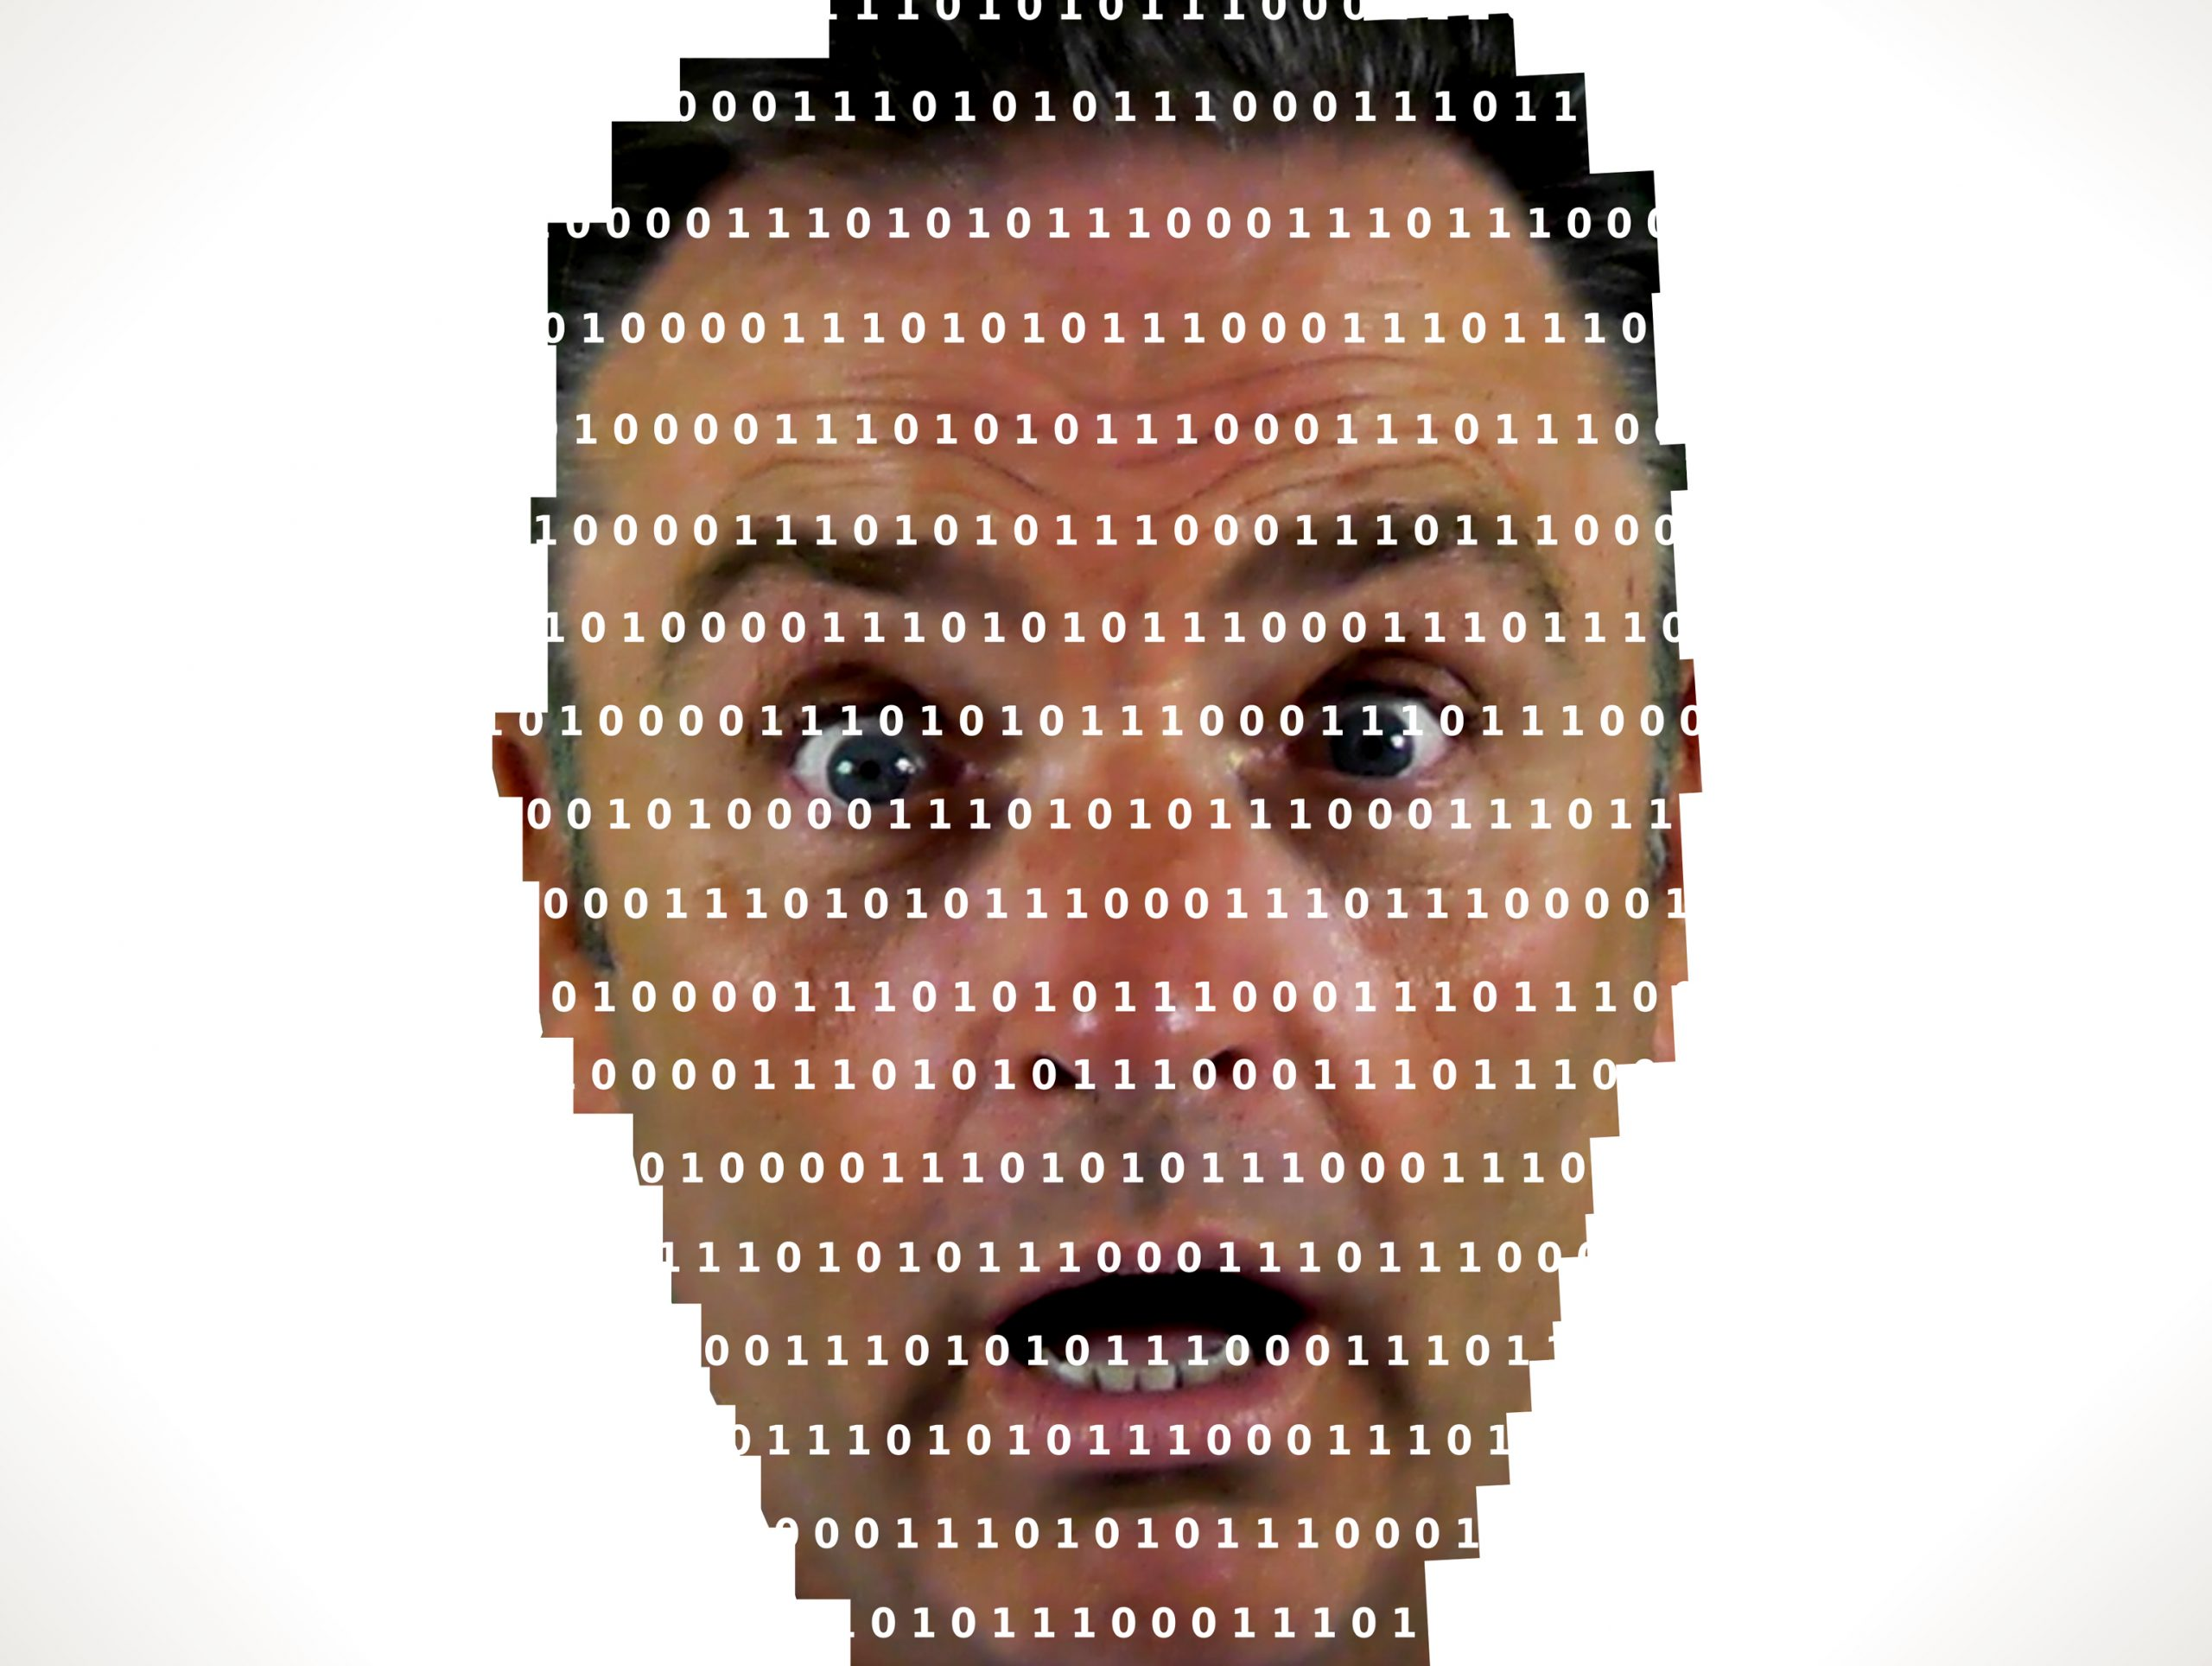 Surprised man looking into binary code - The online privacy prob